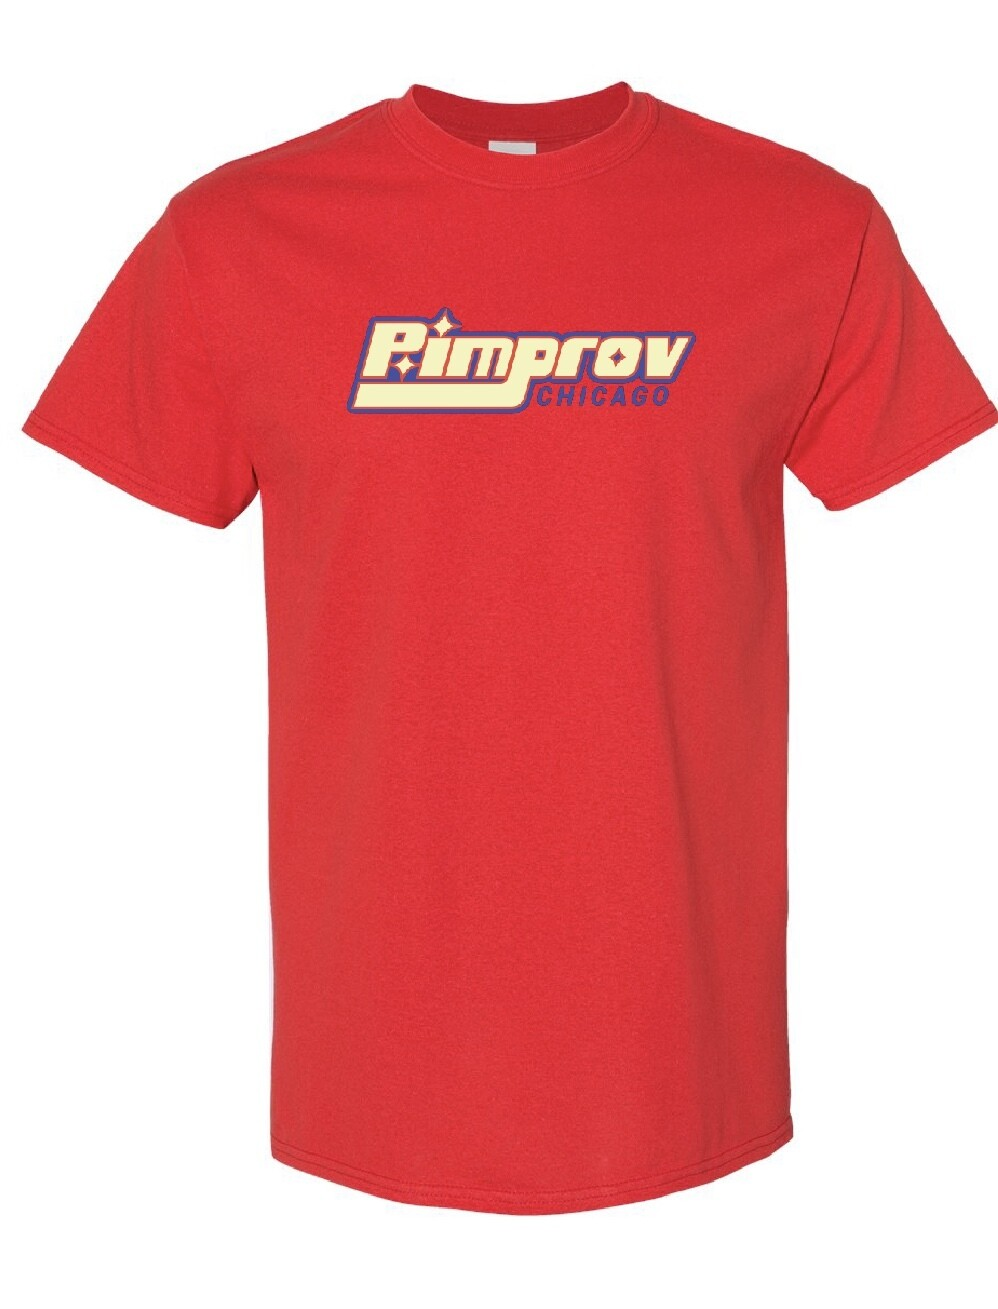 Pimprov Men's T-shirt. Red